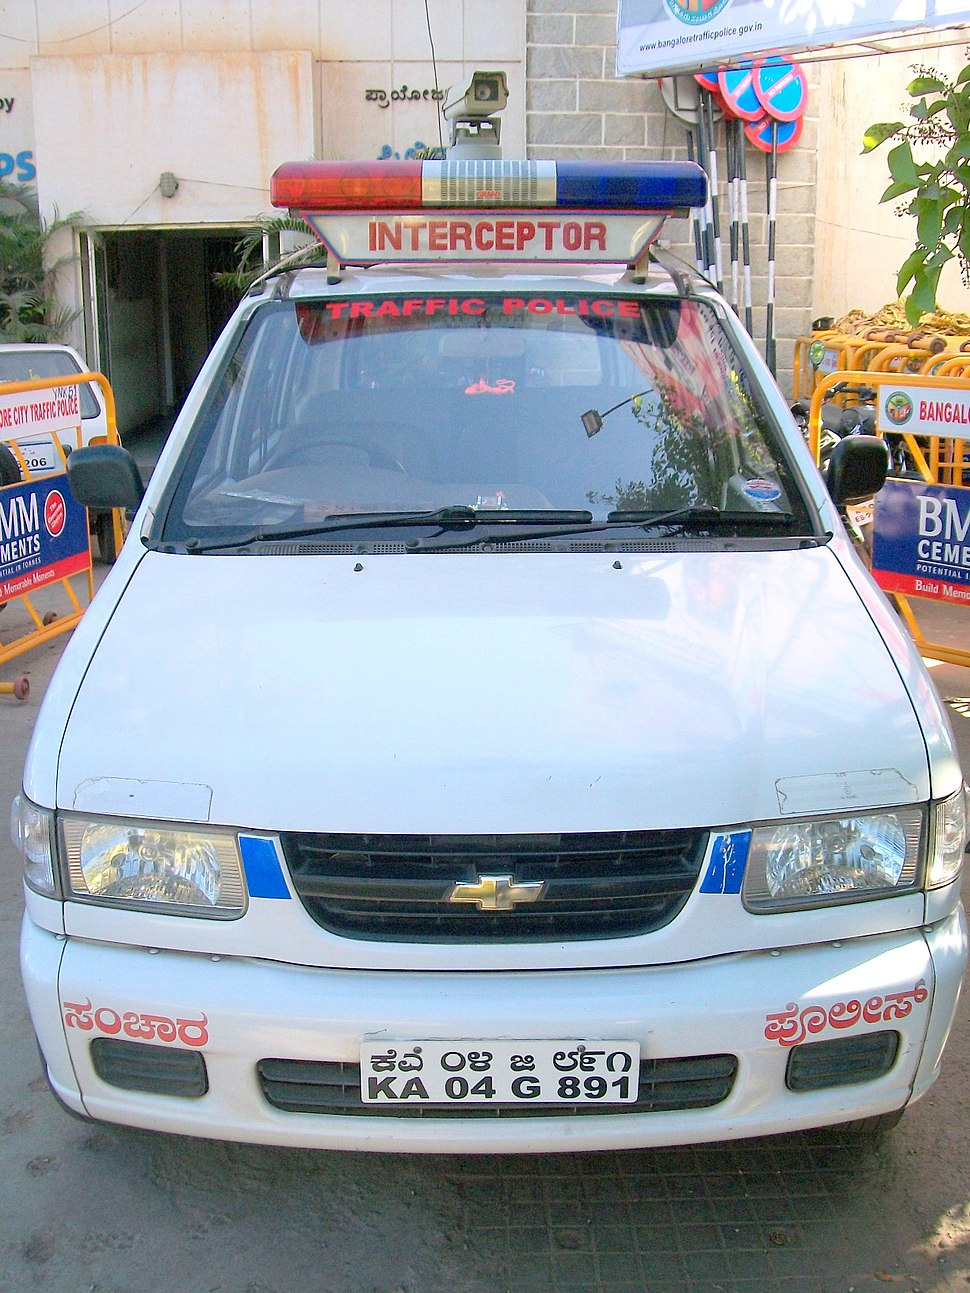 One of the typical Interceptors used by the Bangalore Traffic Police